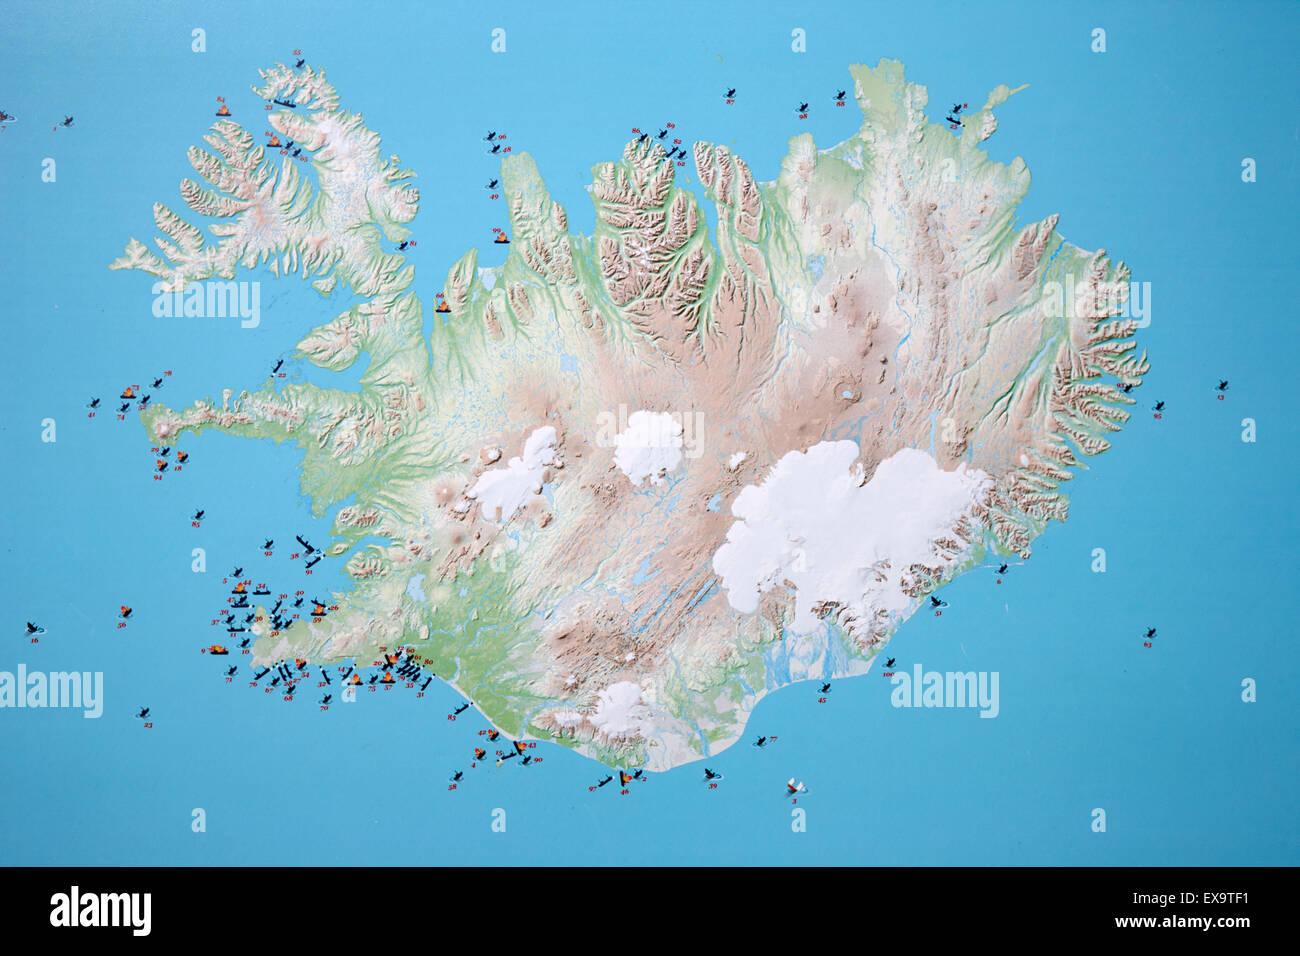 map of iceland showing various shipwrecks around the ... Shipwreck Map on prehistoric maps, 17th century maps, groundwater maps, high quality maps, geoportal maps, pyramids ancient egypt maps, stone maps, shipping maps, pathfinder rpg maps, role playing maps, social studies maps, treasure maps, disease maps, ham radio maps, teaching maps, fictional maps, fill in the blank maps, unusual maps, minecraft mine maps,